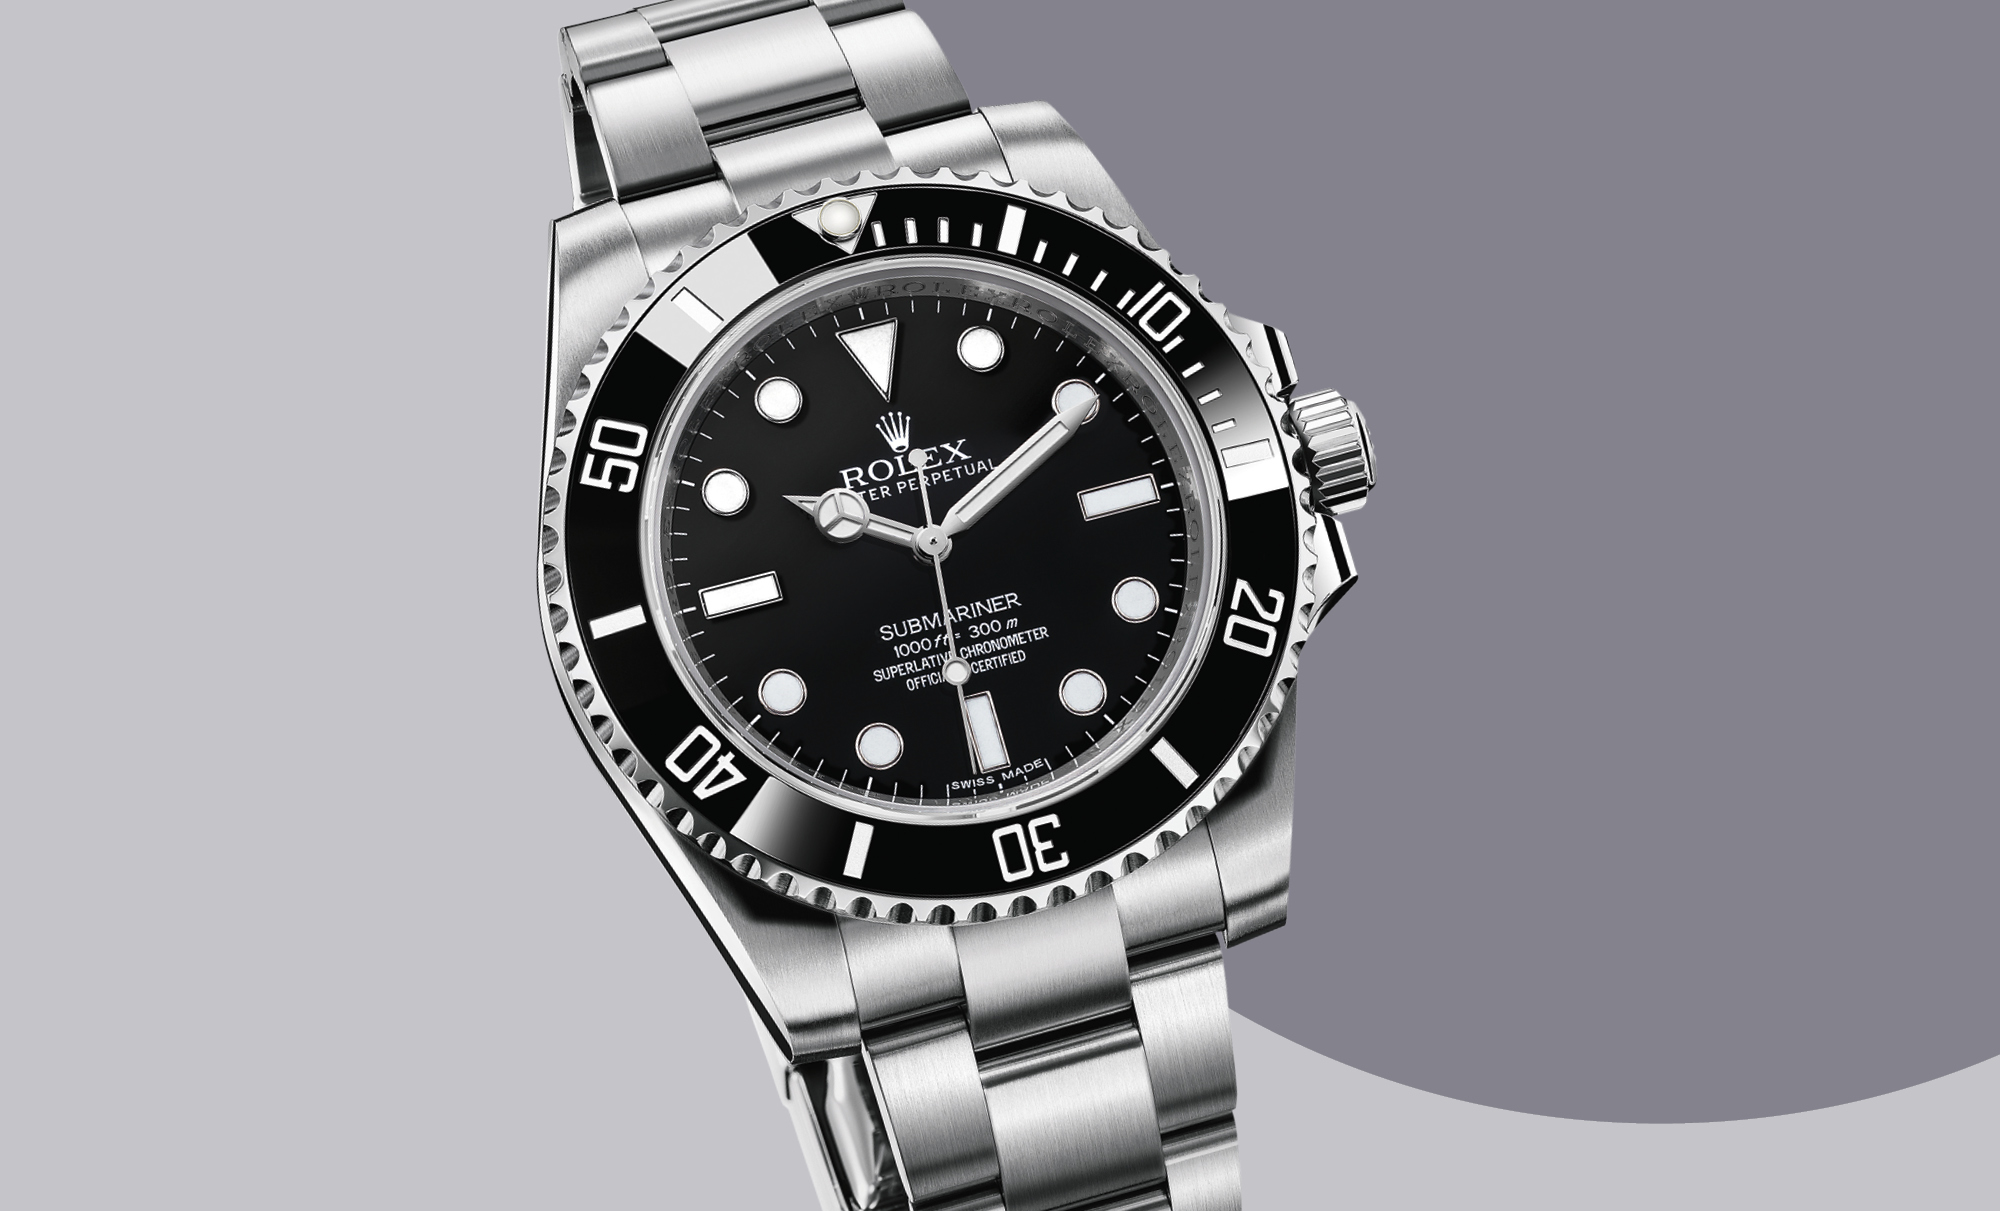 Submariner 40mm Oystersteel, £5,750